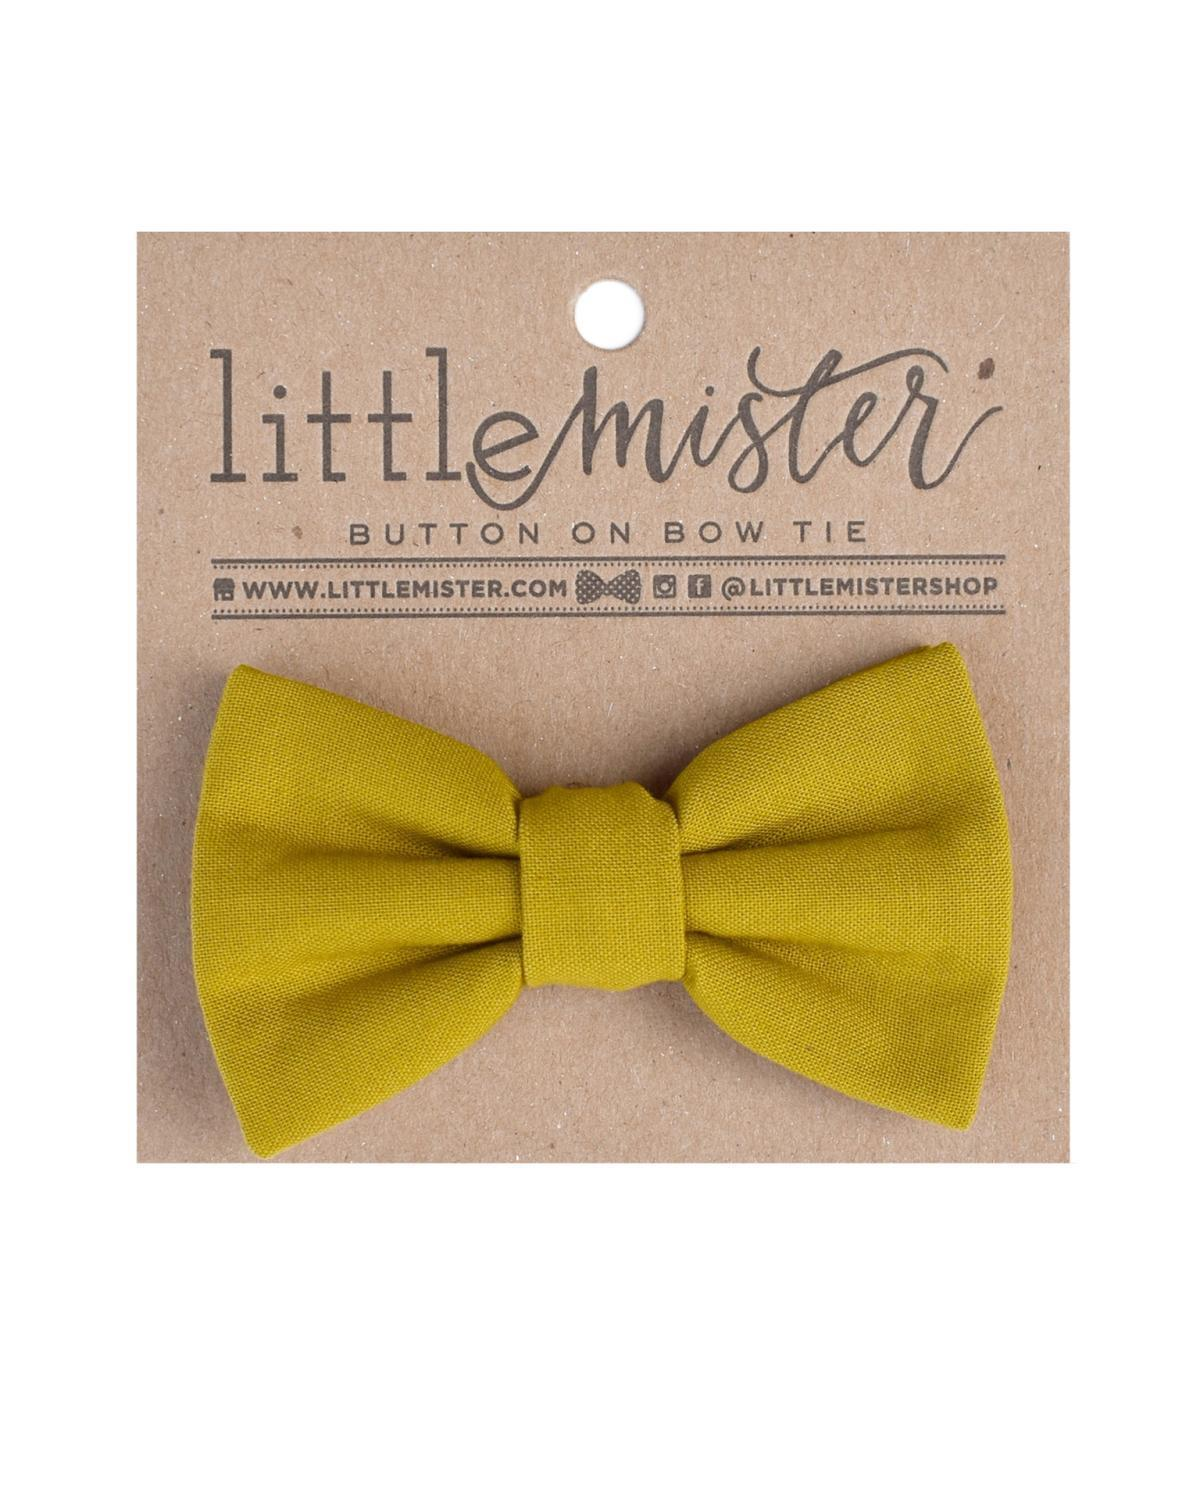 Little little mister accessories s Button on Bow Tie in Solid Chartreuse